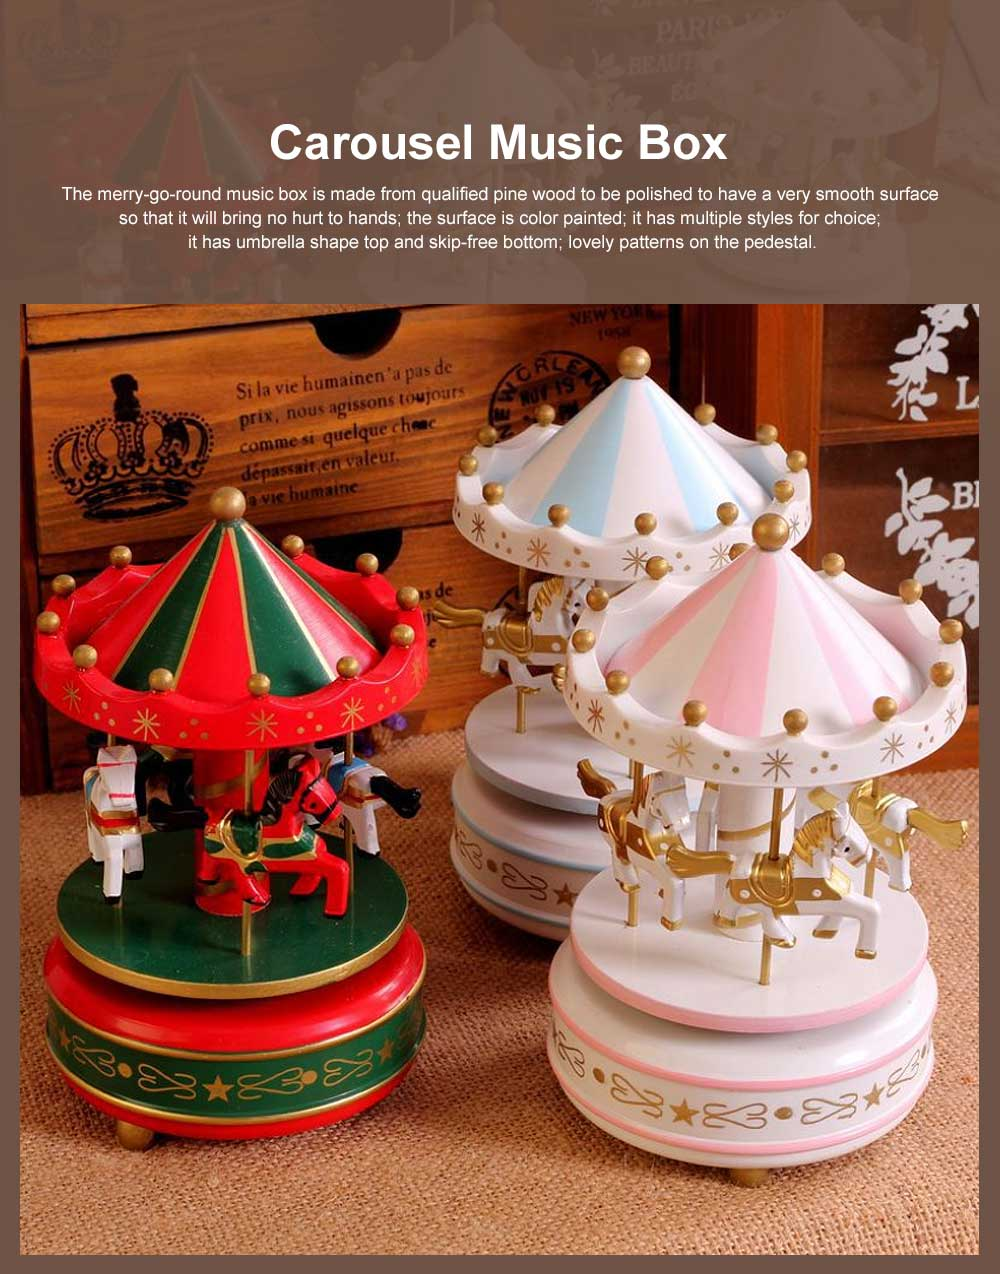 Wood-made Carousel Music Box Multiple Style Whirling Musical Box Gift or Decorative Ornaments for Household Use Craft 0